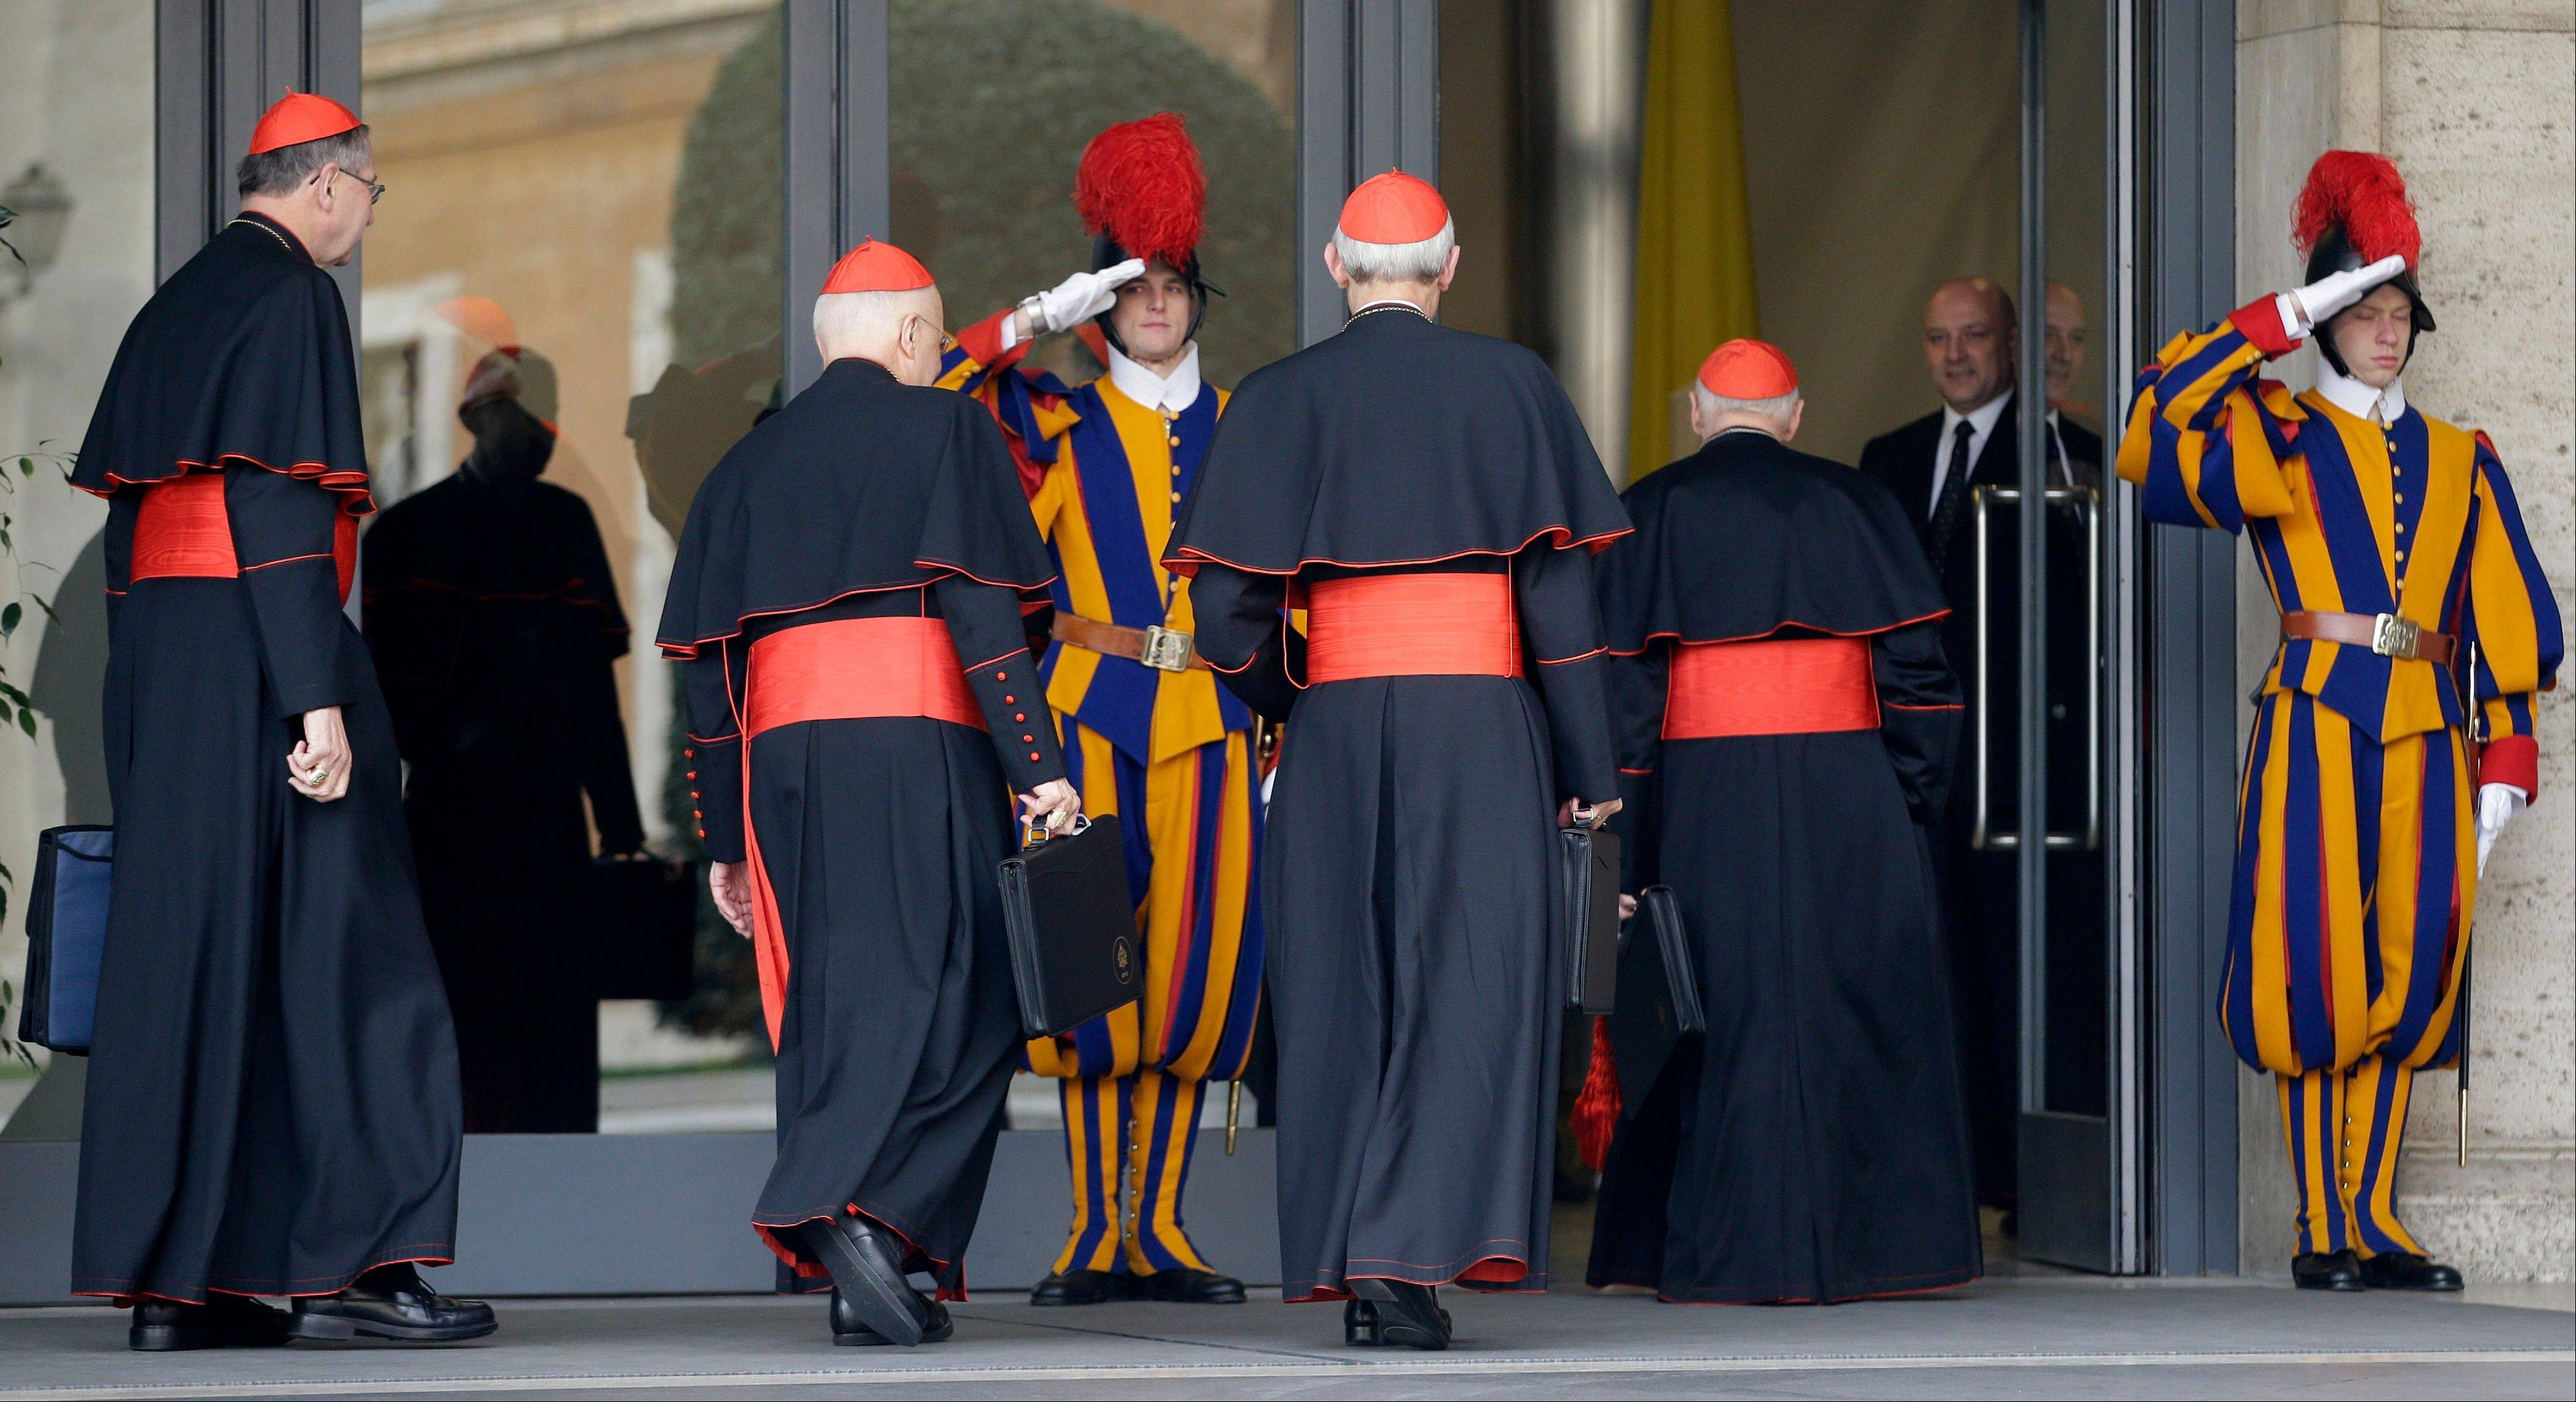 Associated Press U.S. cardinals arrive for a meeting at the Vatican Tuesday for a second day of pre-conclave meetings. With a handful of cardinals still traveling to Rome, no date has yet been set for the start of the conclave that will elect the new pope.